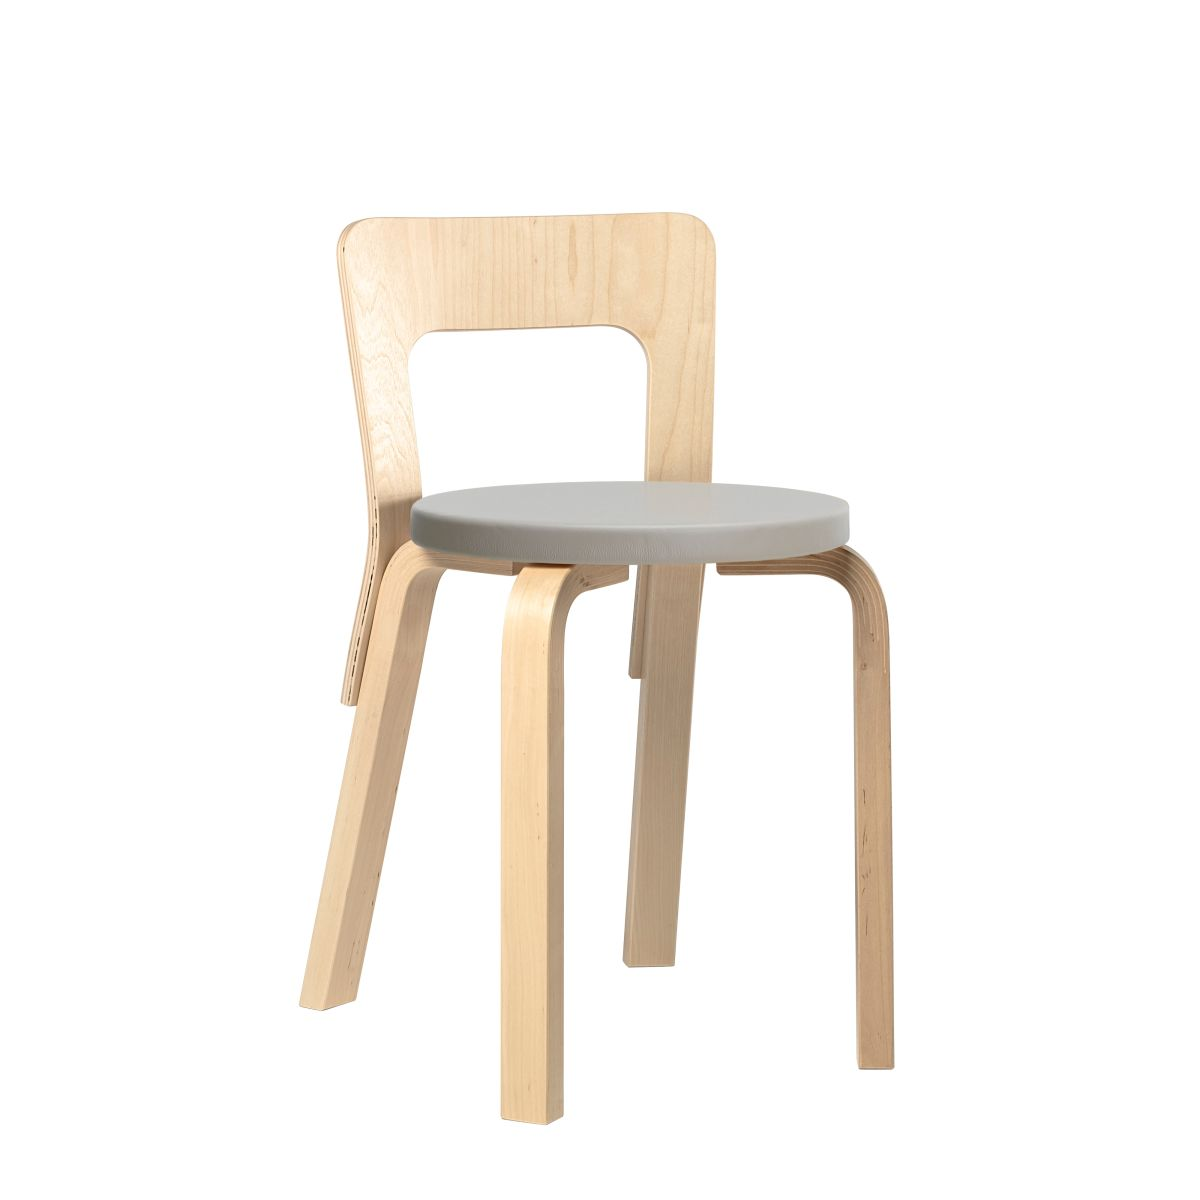 Chair-65-birch-seat-leather-upholstery_F-2912687